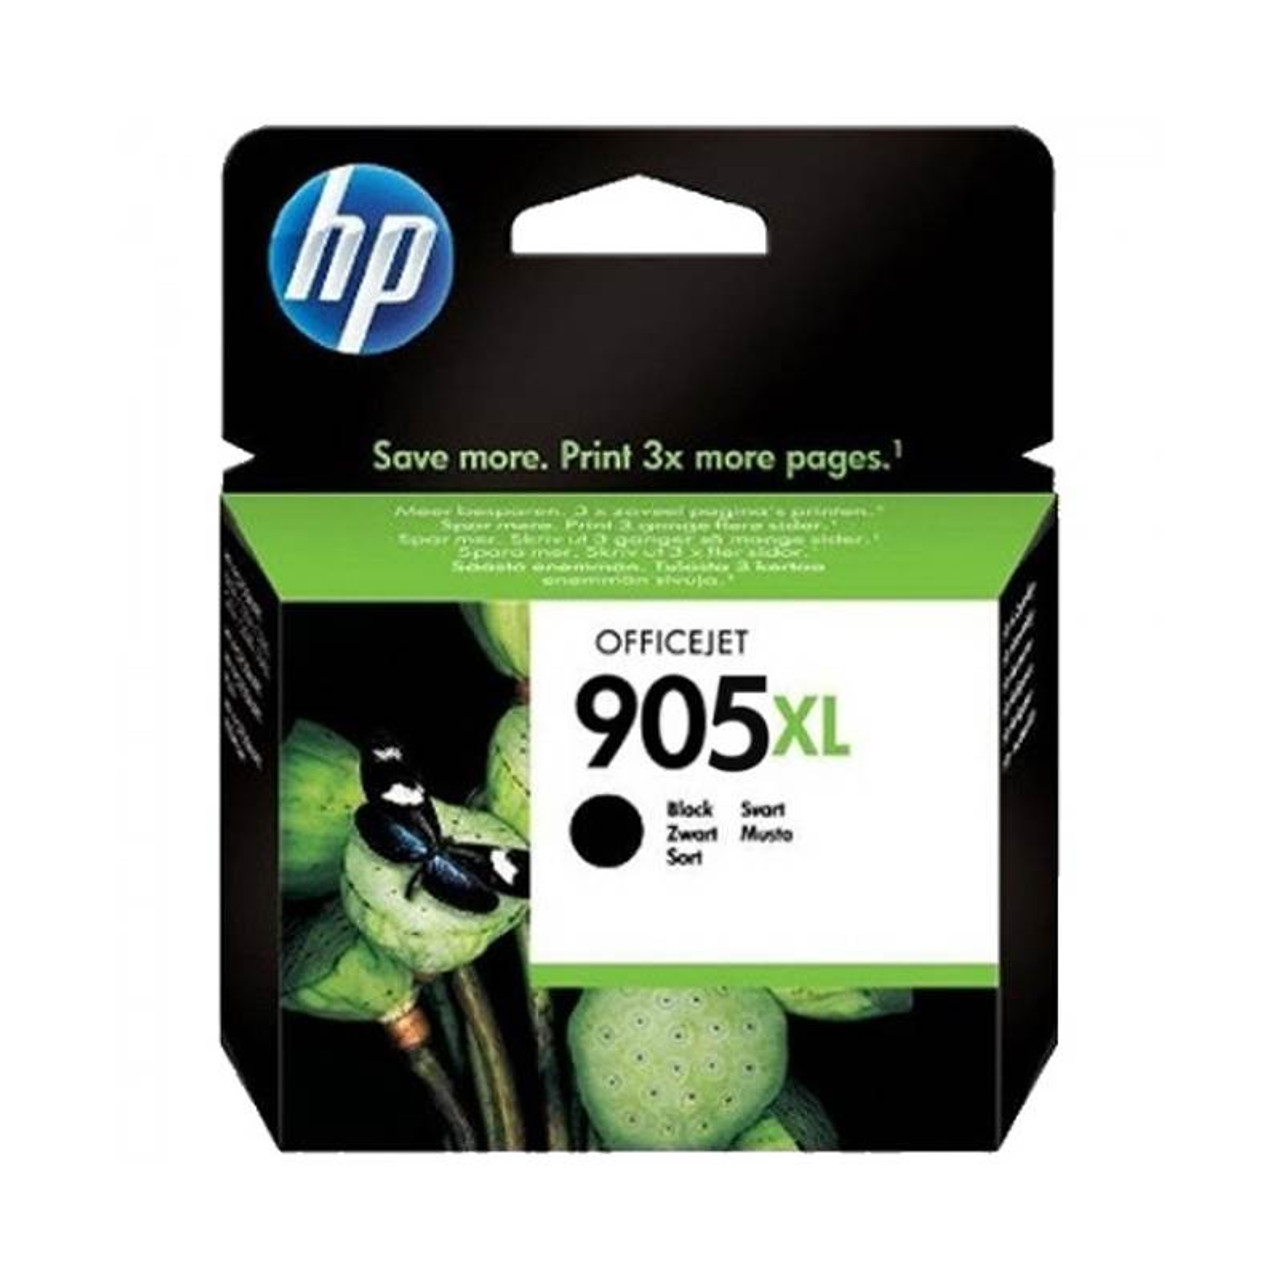 Image for HP905XL Original Ink Cartridge - Black (T6M17AA) CX Computer Superstore